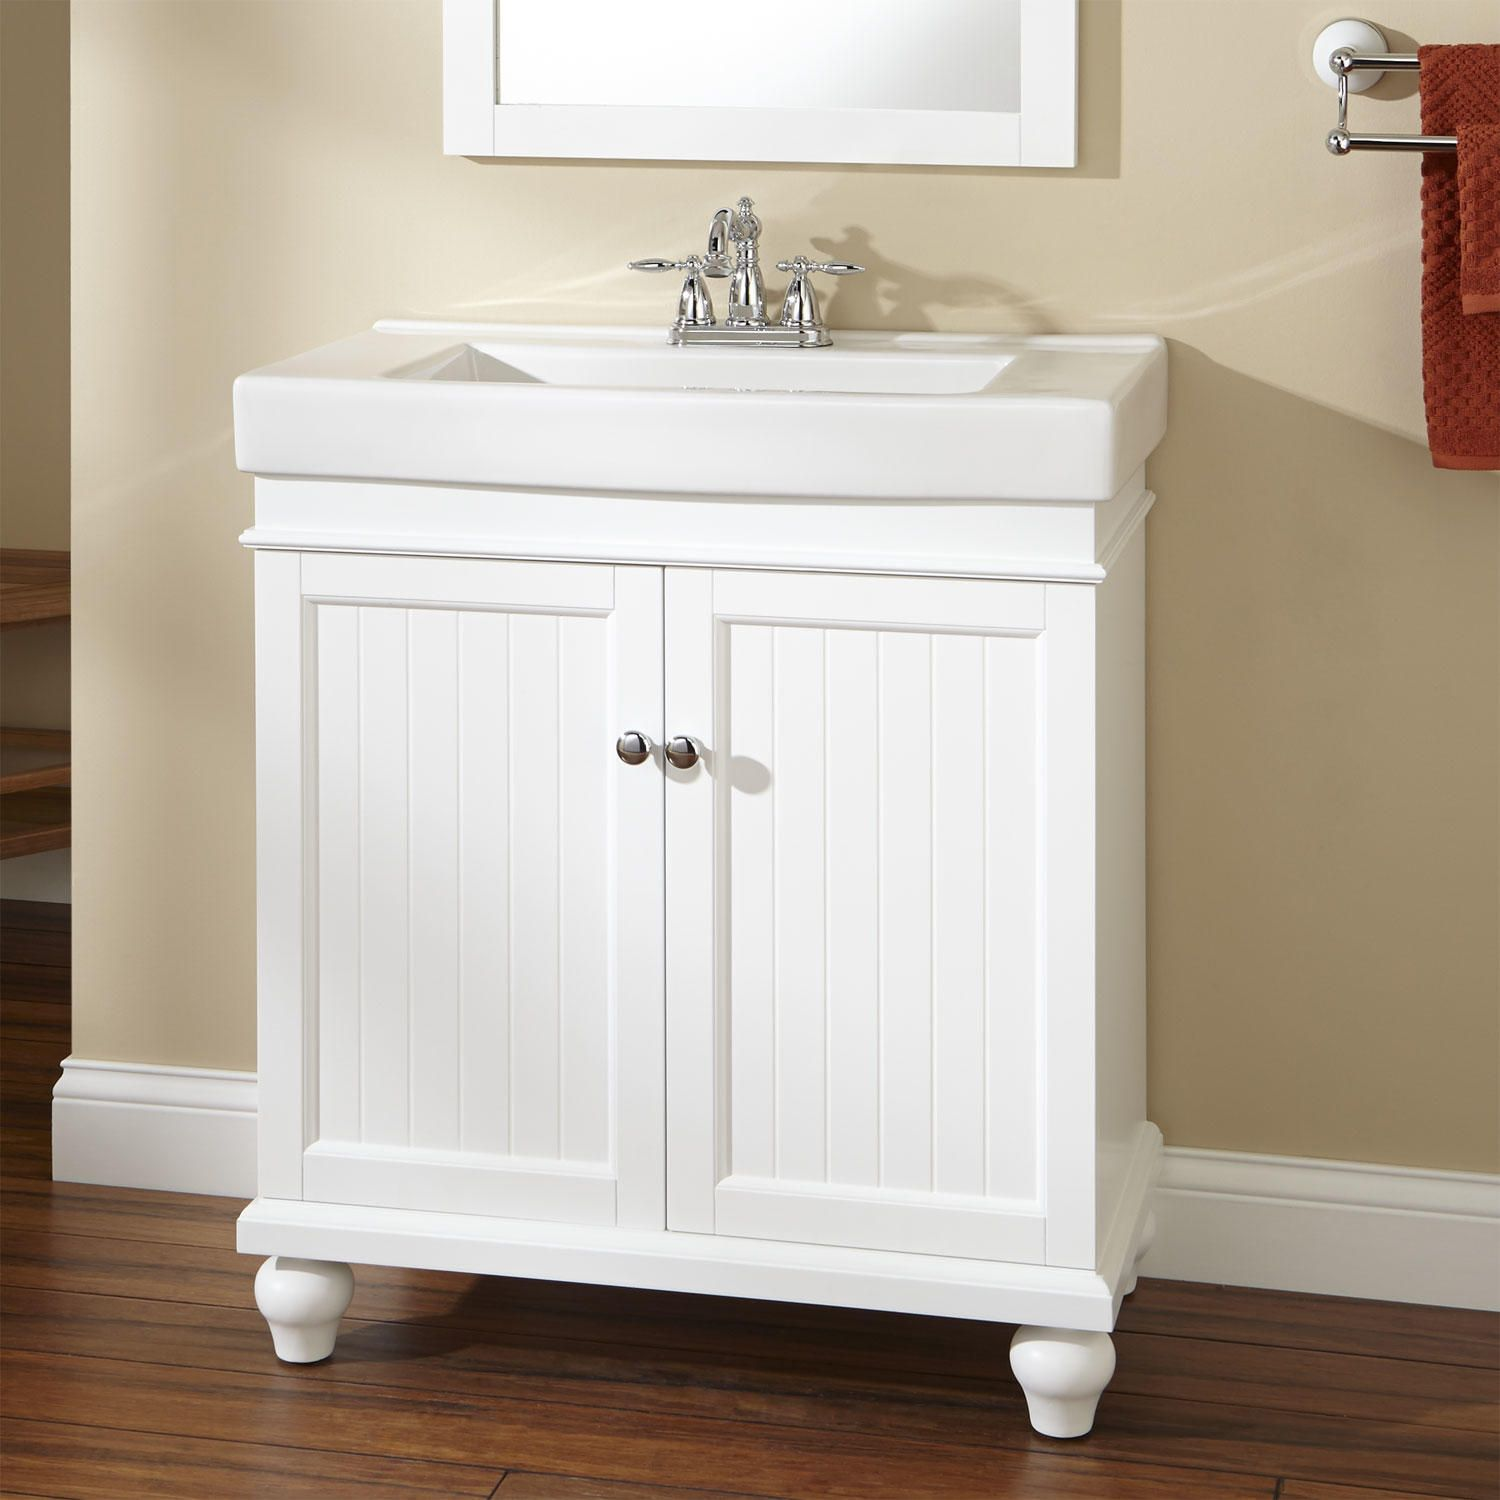 24 Lander Vanity Cabinet White Small Bathroom Vanities 24